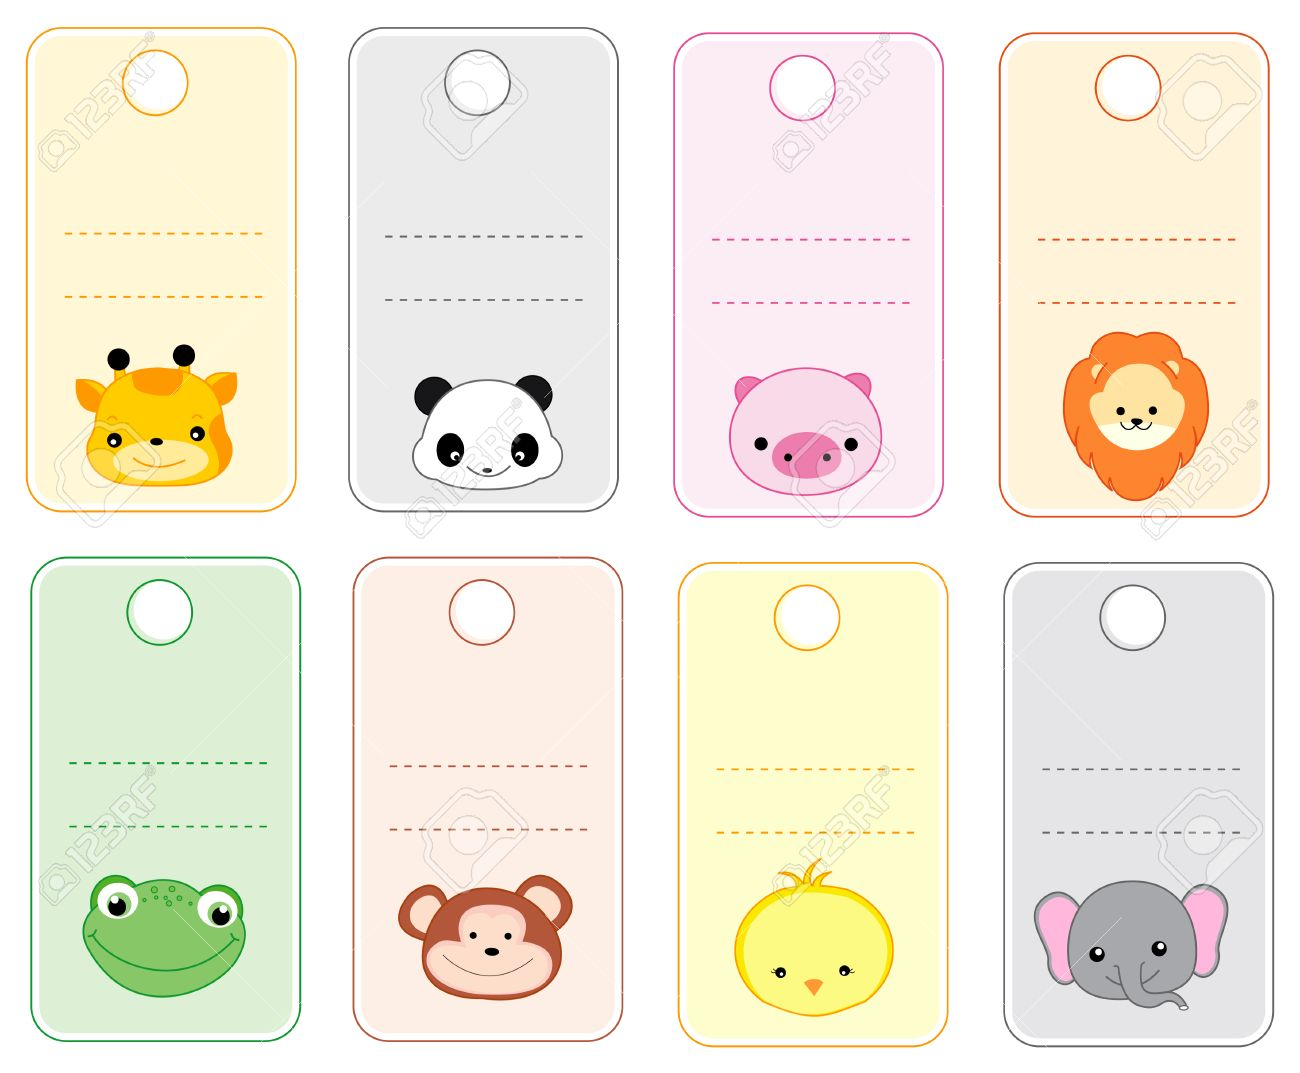 photo about Name Tag Printable referred to as Colourful printable reward tags / popularity tags with lovely animal faces..